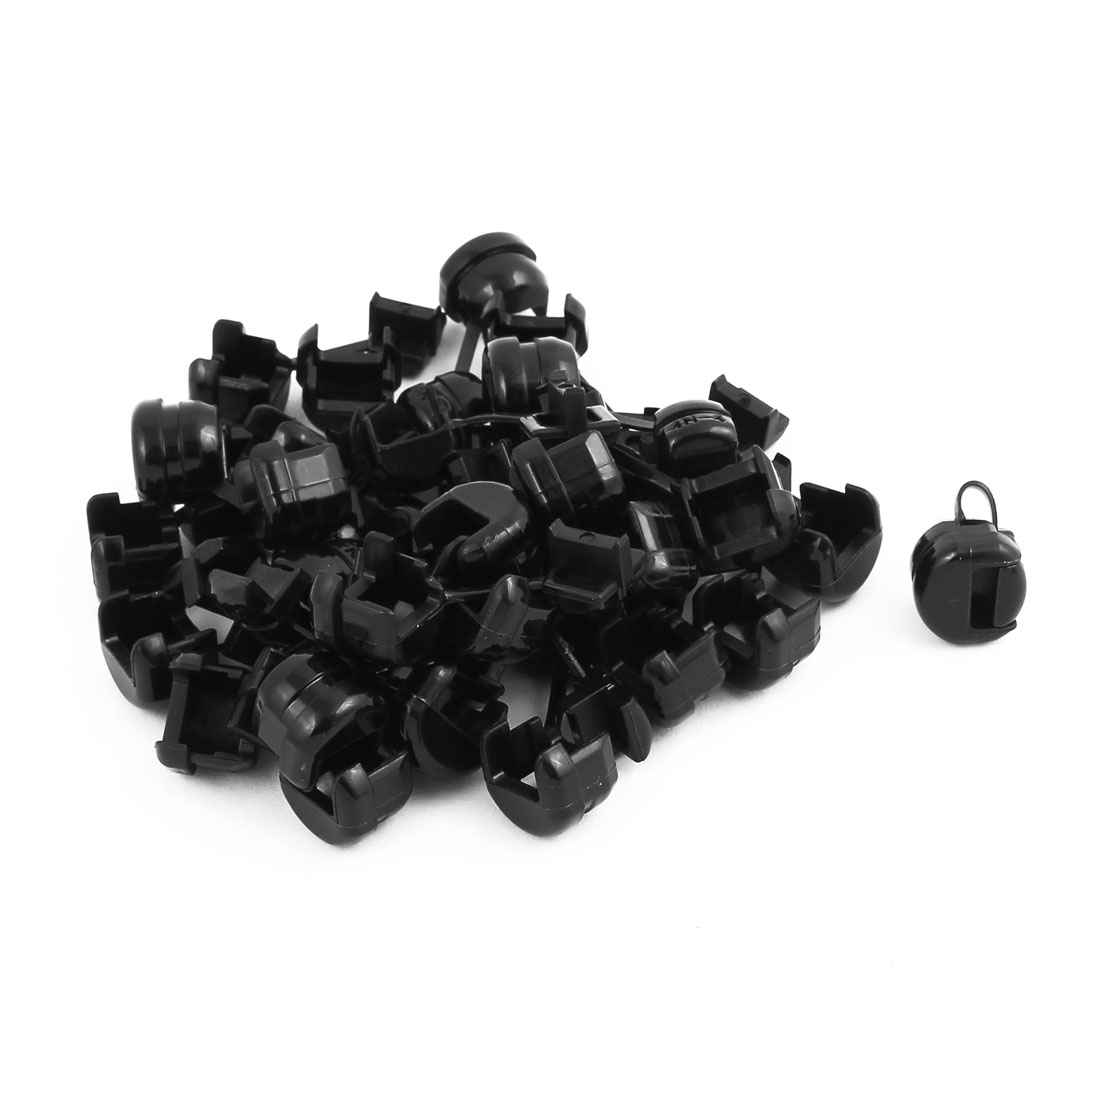 30Pcs 4N-4 Round Cable Wire Strain Relief Bush Grommet 11.5mm Diameter Black